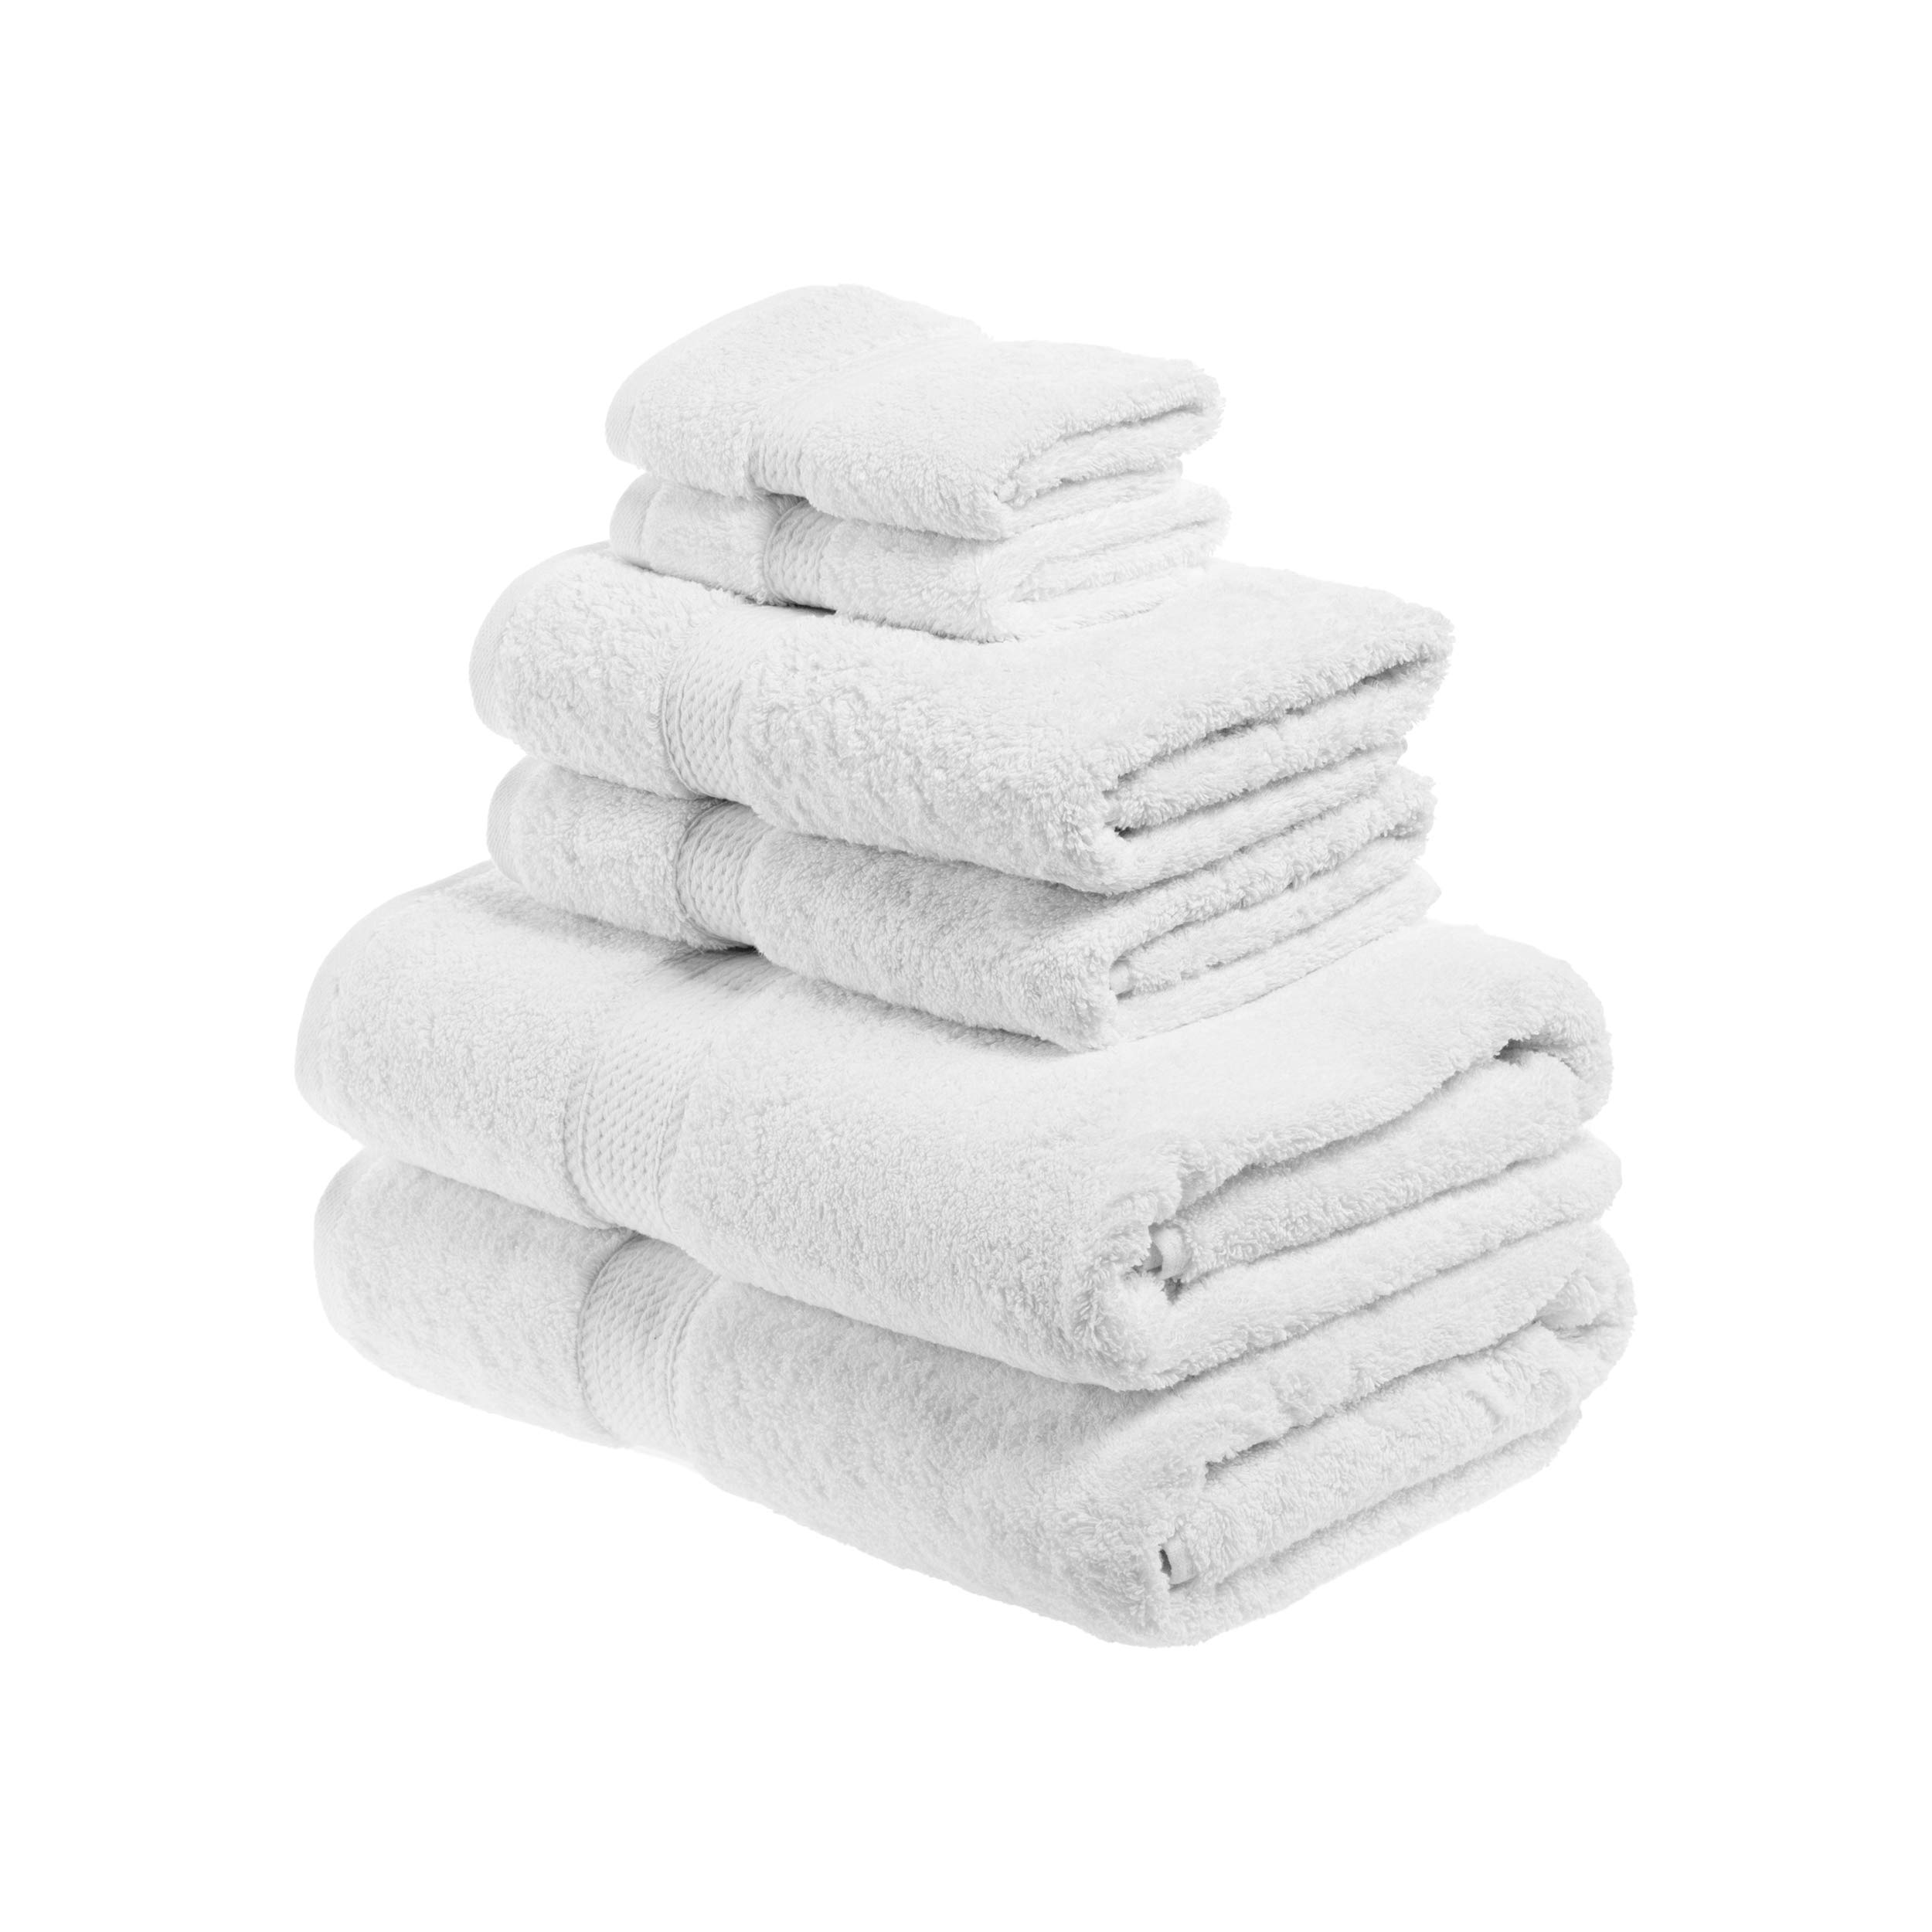 Blue Nile Mills Buckingham Egyptian Cotton 6-Piece Towel Set, 900 GSM, Hotel Quality, Luxury Weight, Long-Staple, Soft, Absorbent, Durable, Rope-Style Border, 2 Bath, 2 Hand, and 2 Face Towels, White